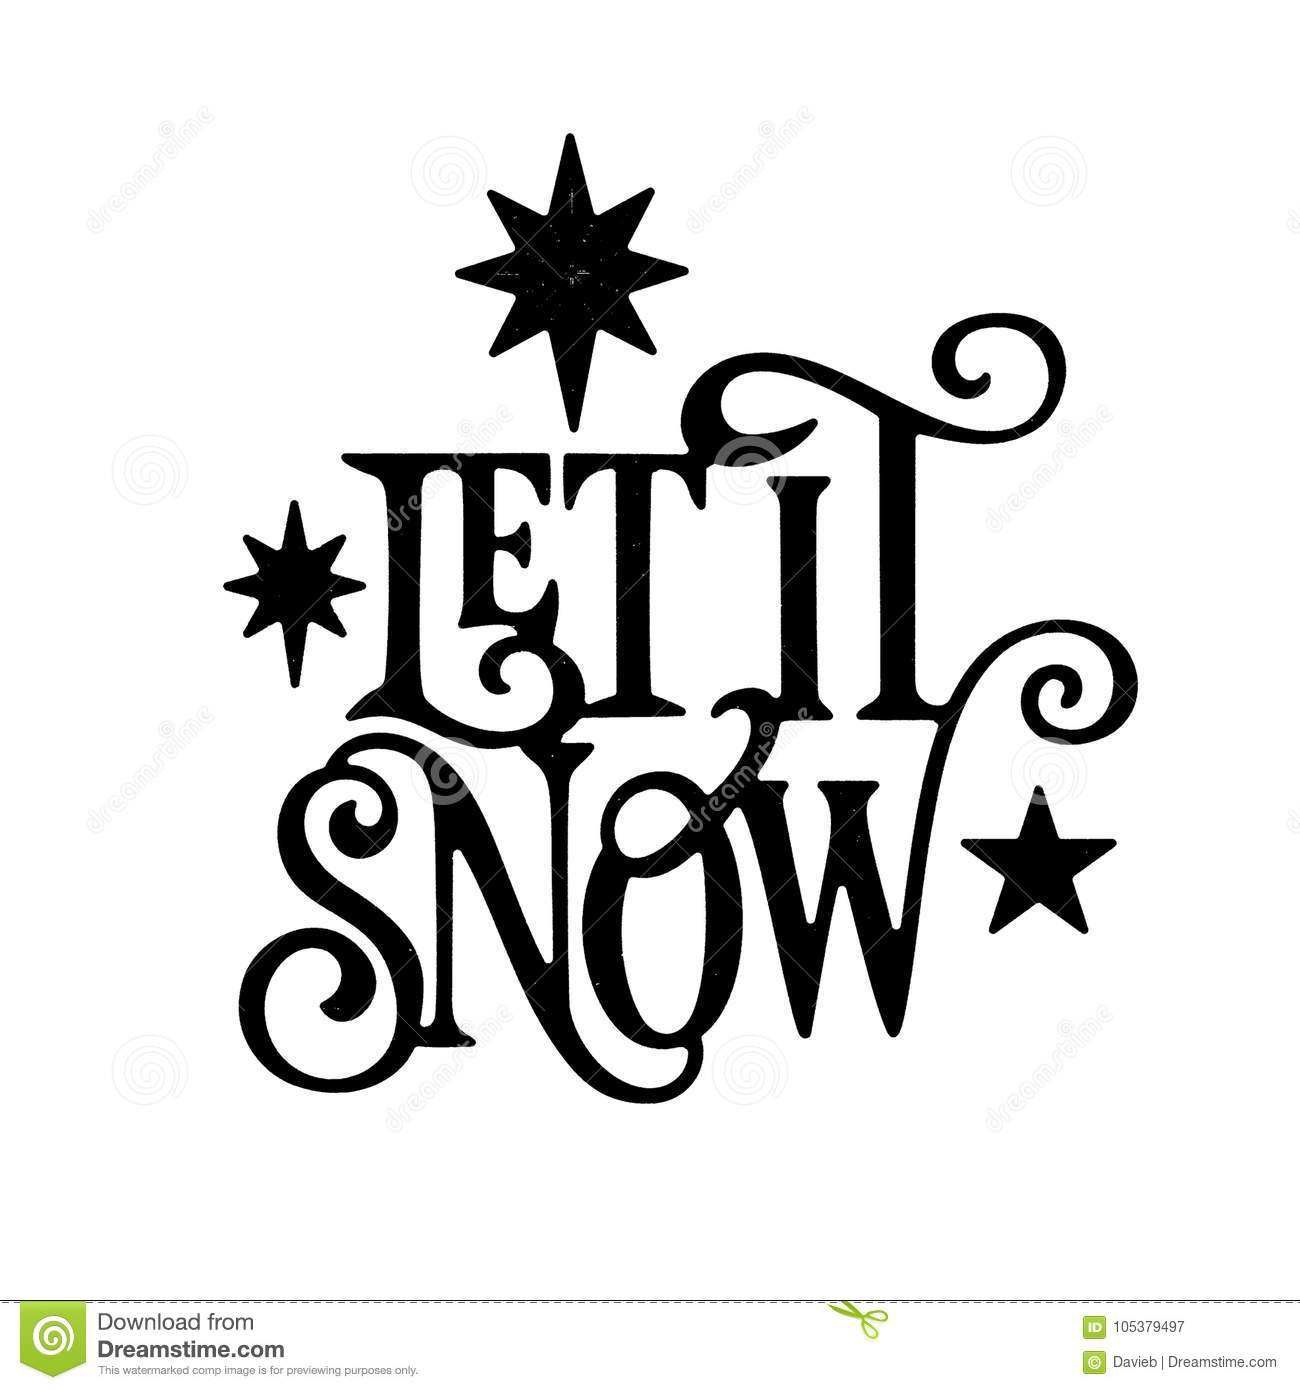 Christmas Silhouette.Let It Snow Christmas Wordart Stock Illustration